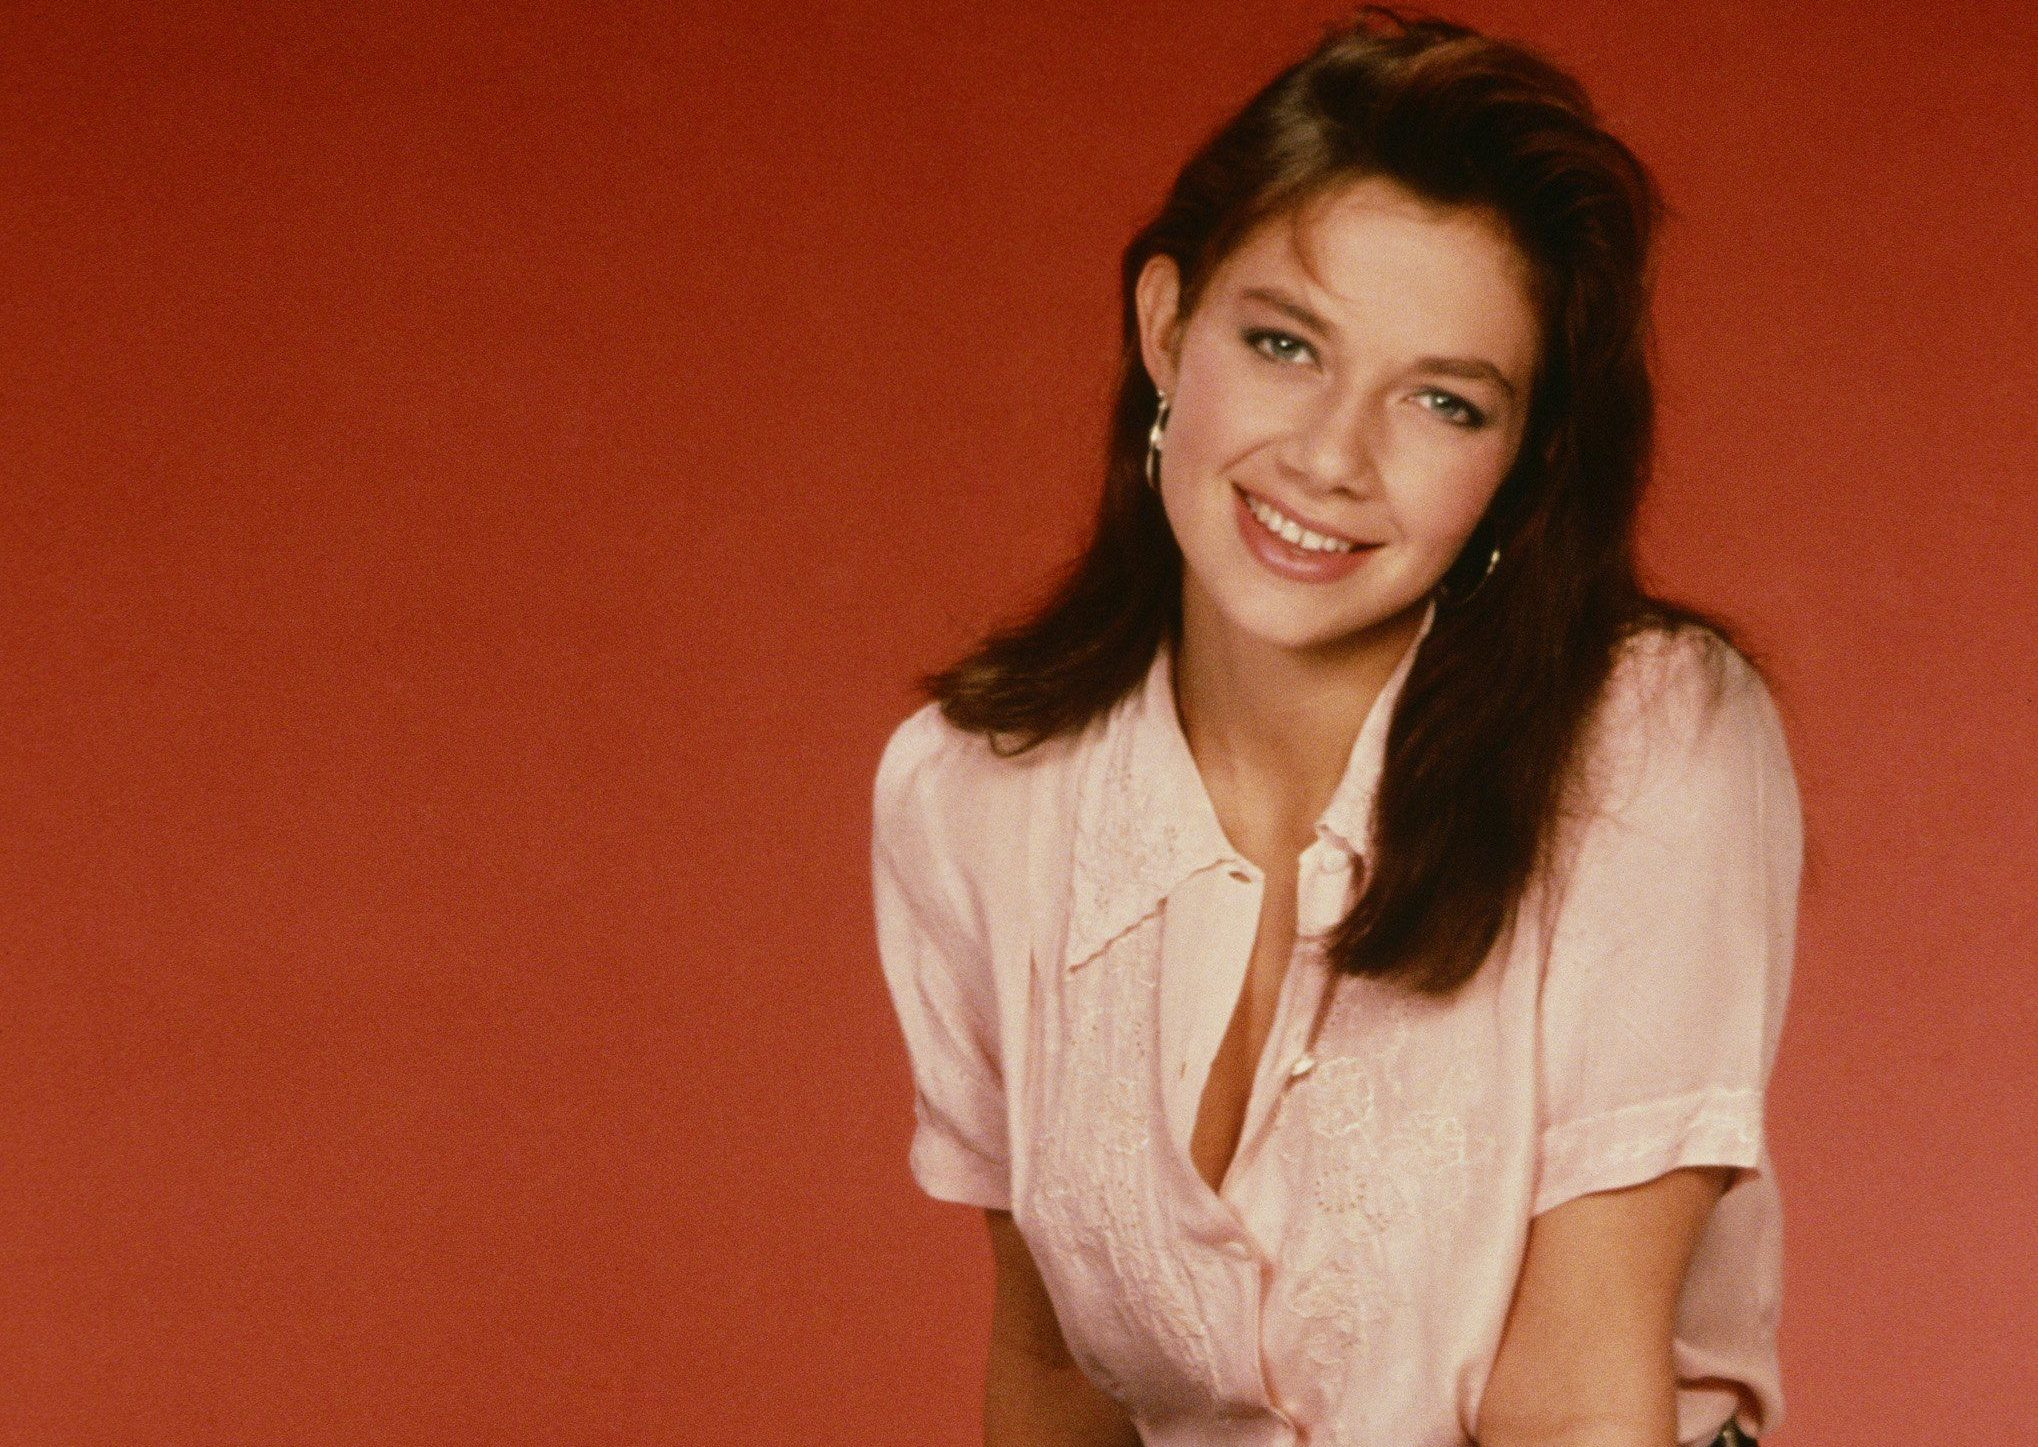 Whatever Happened to Justine Bateman? | First to Know